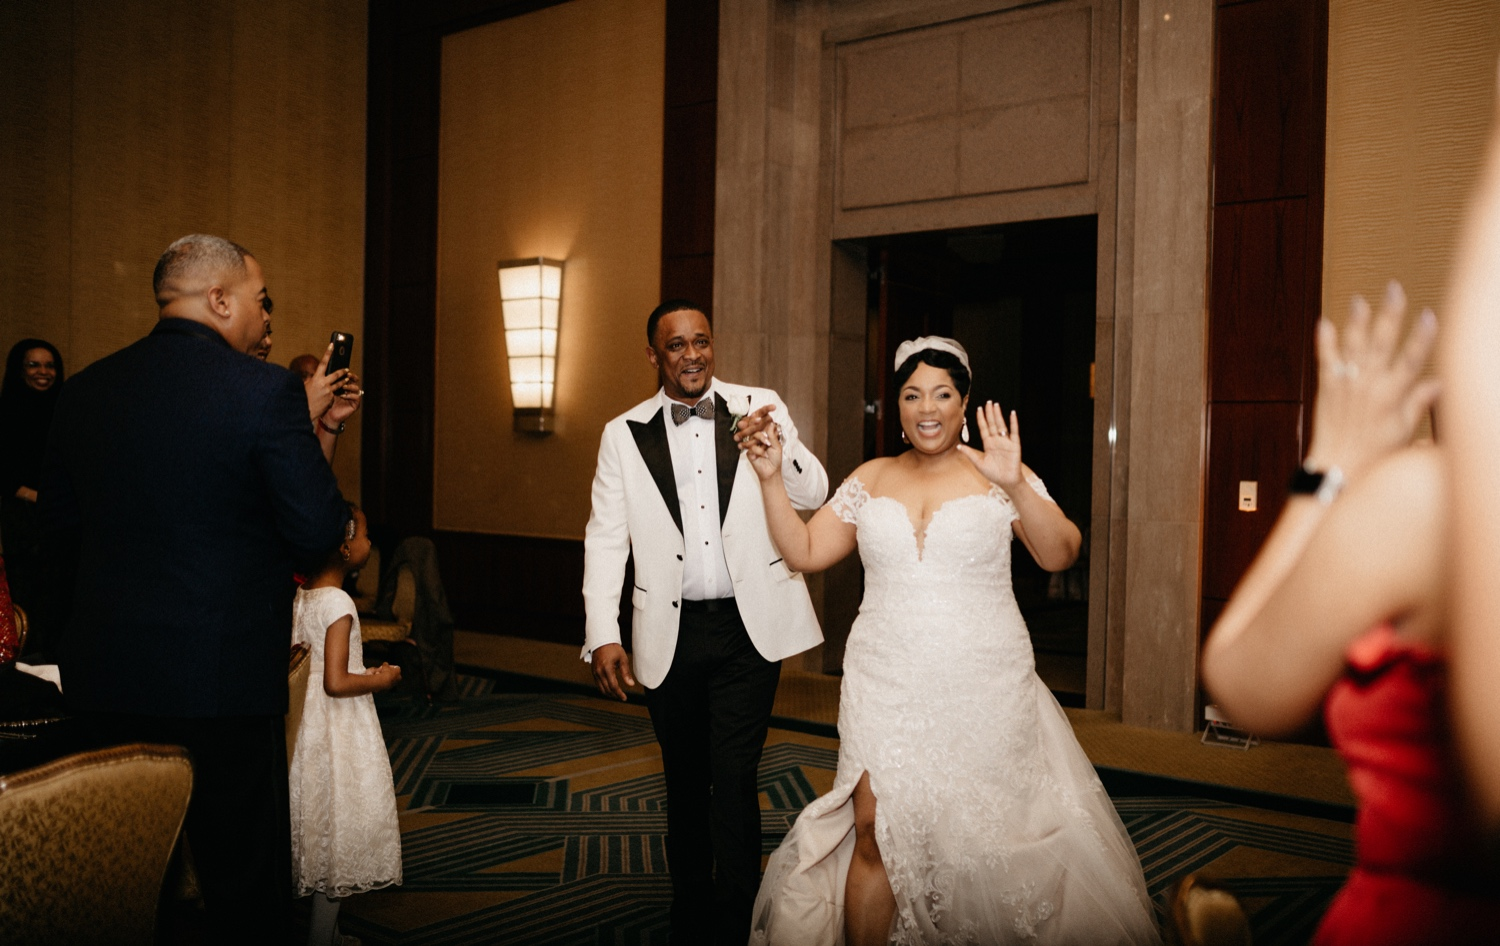 65_Ritz-carlton-wedding_charlotteNC_charlotteweddingphotographer.jpg